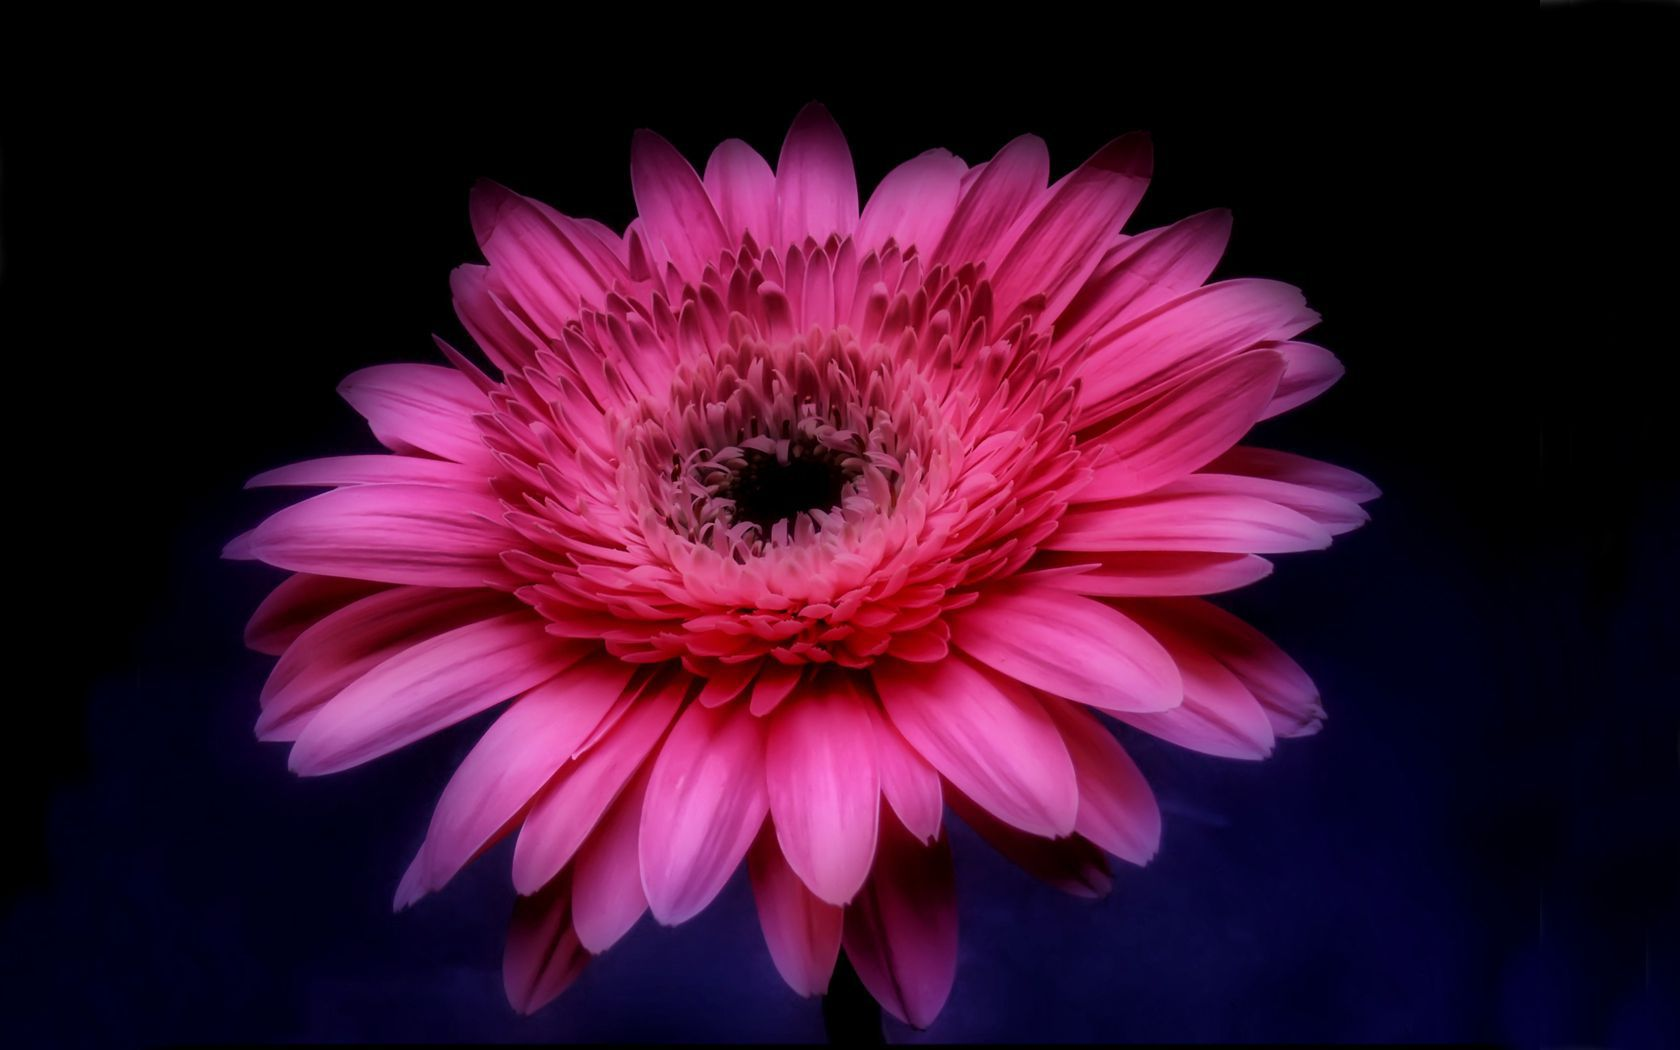 Pink Gerbera Daisy in the Darkness wallpaper 1680x1050 1680x1050